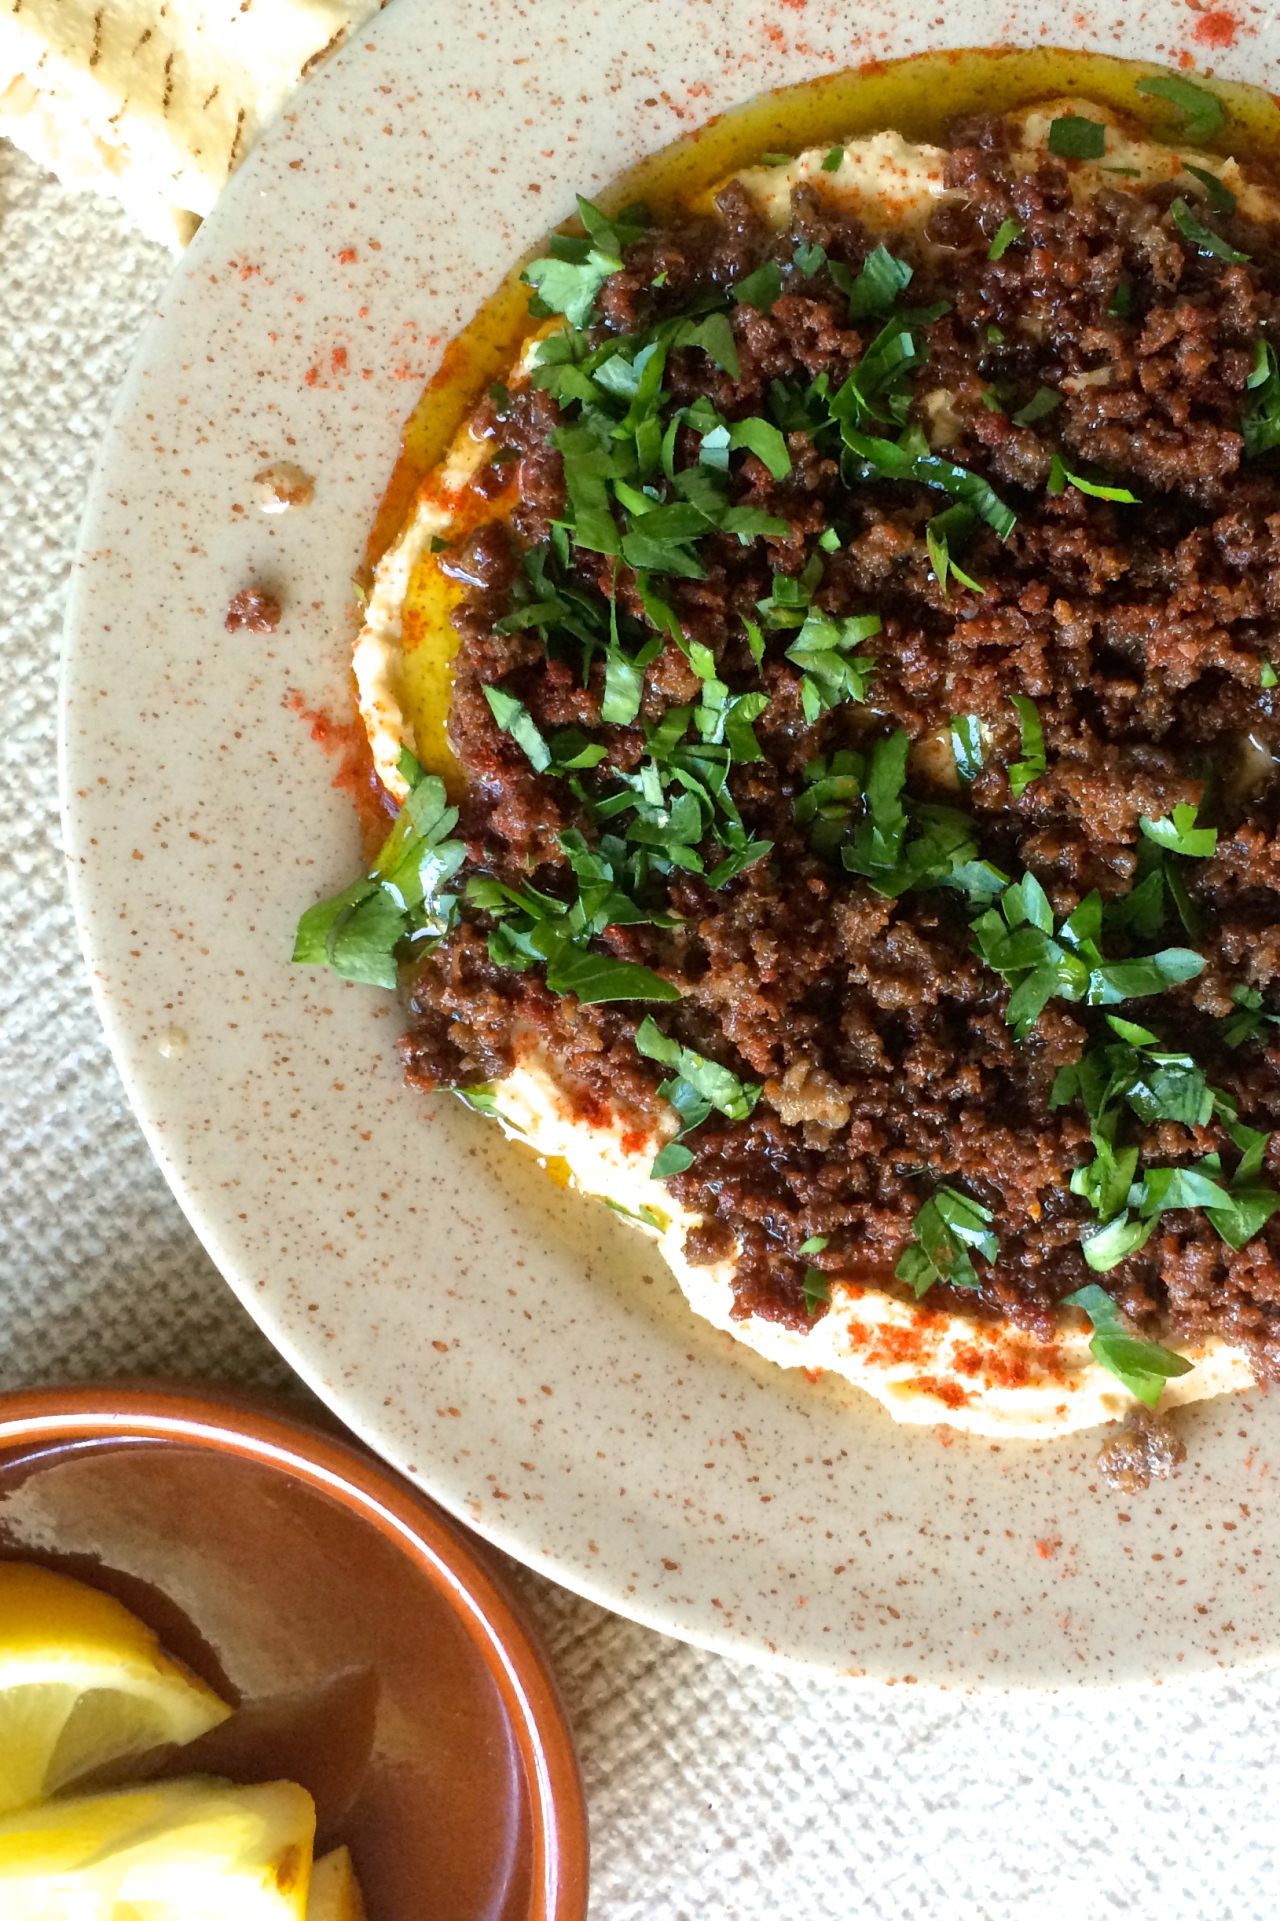 Spiced lamb mince with hummus